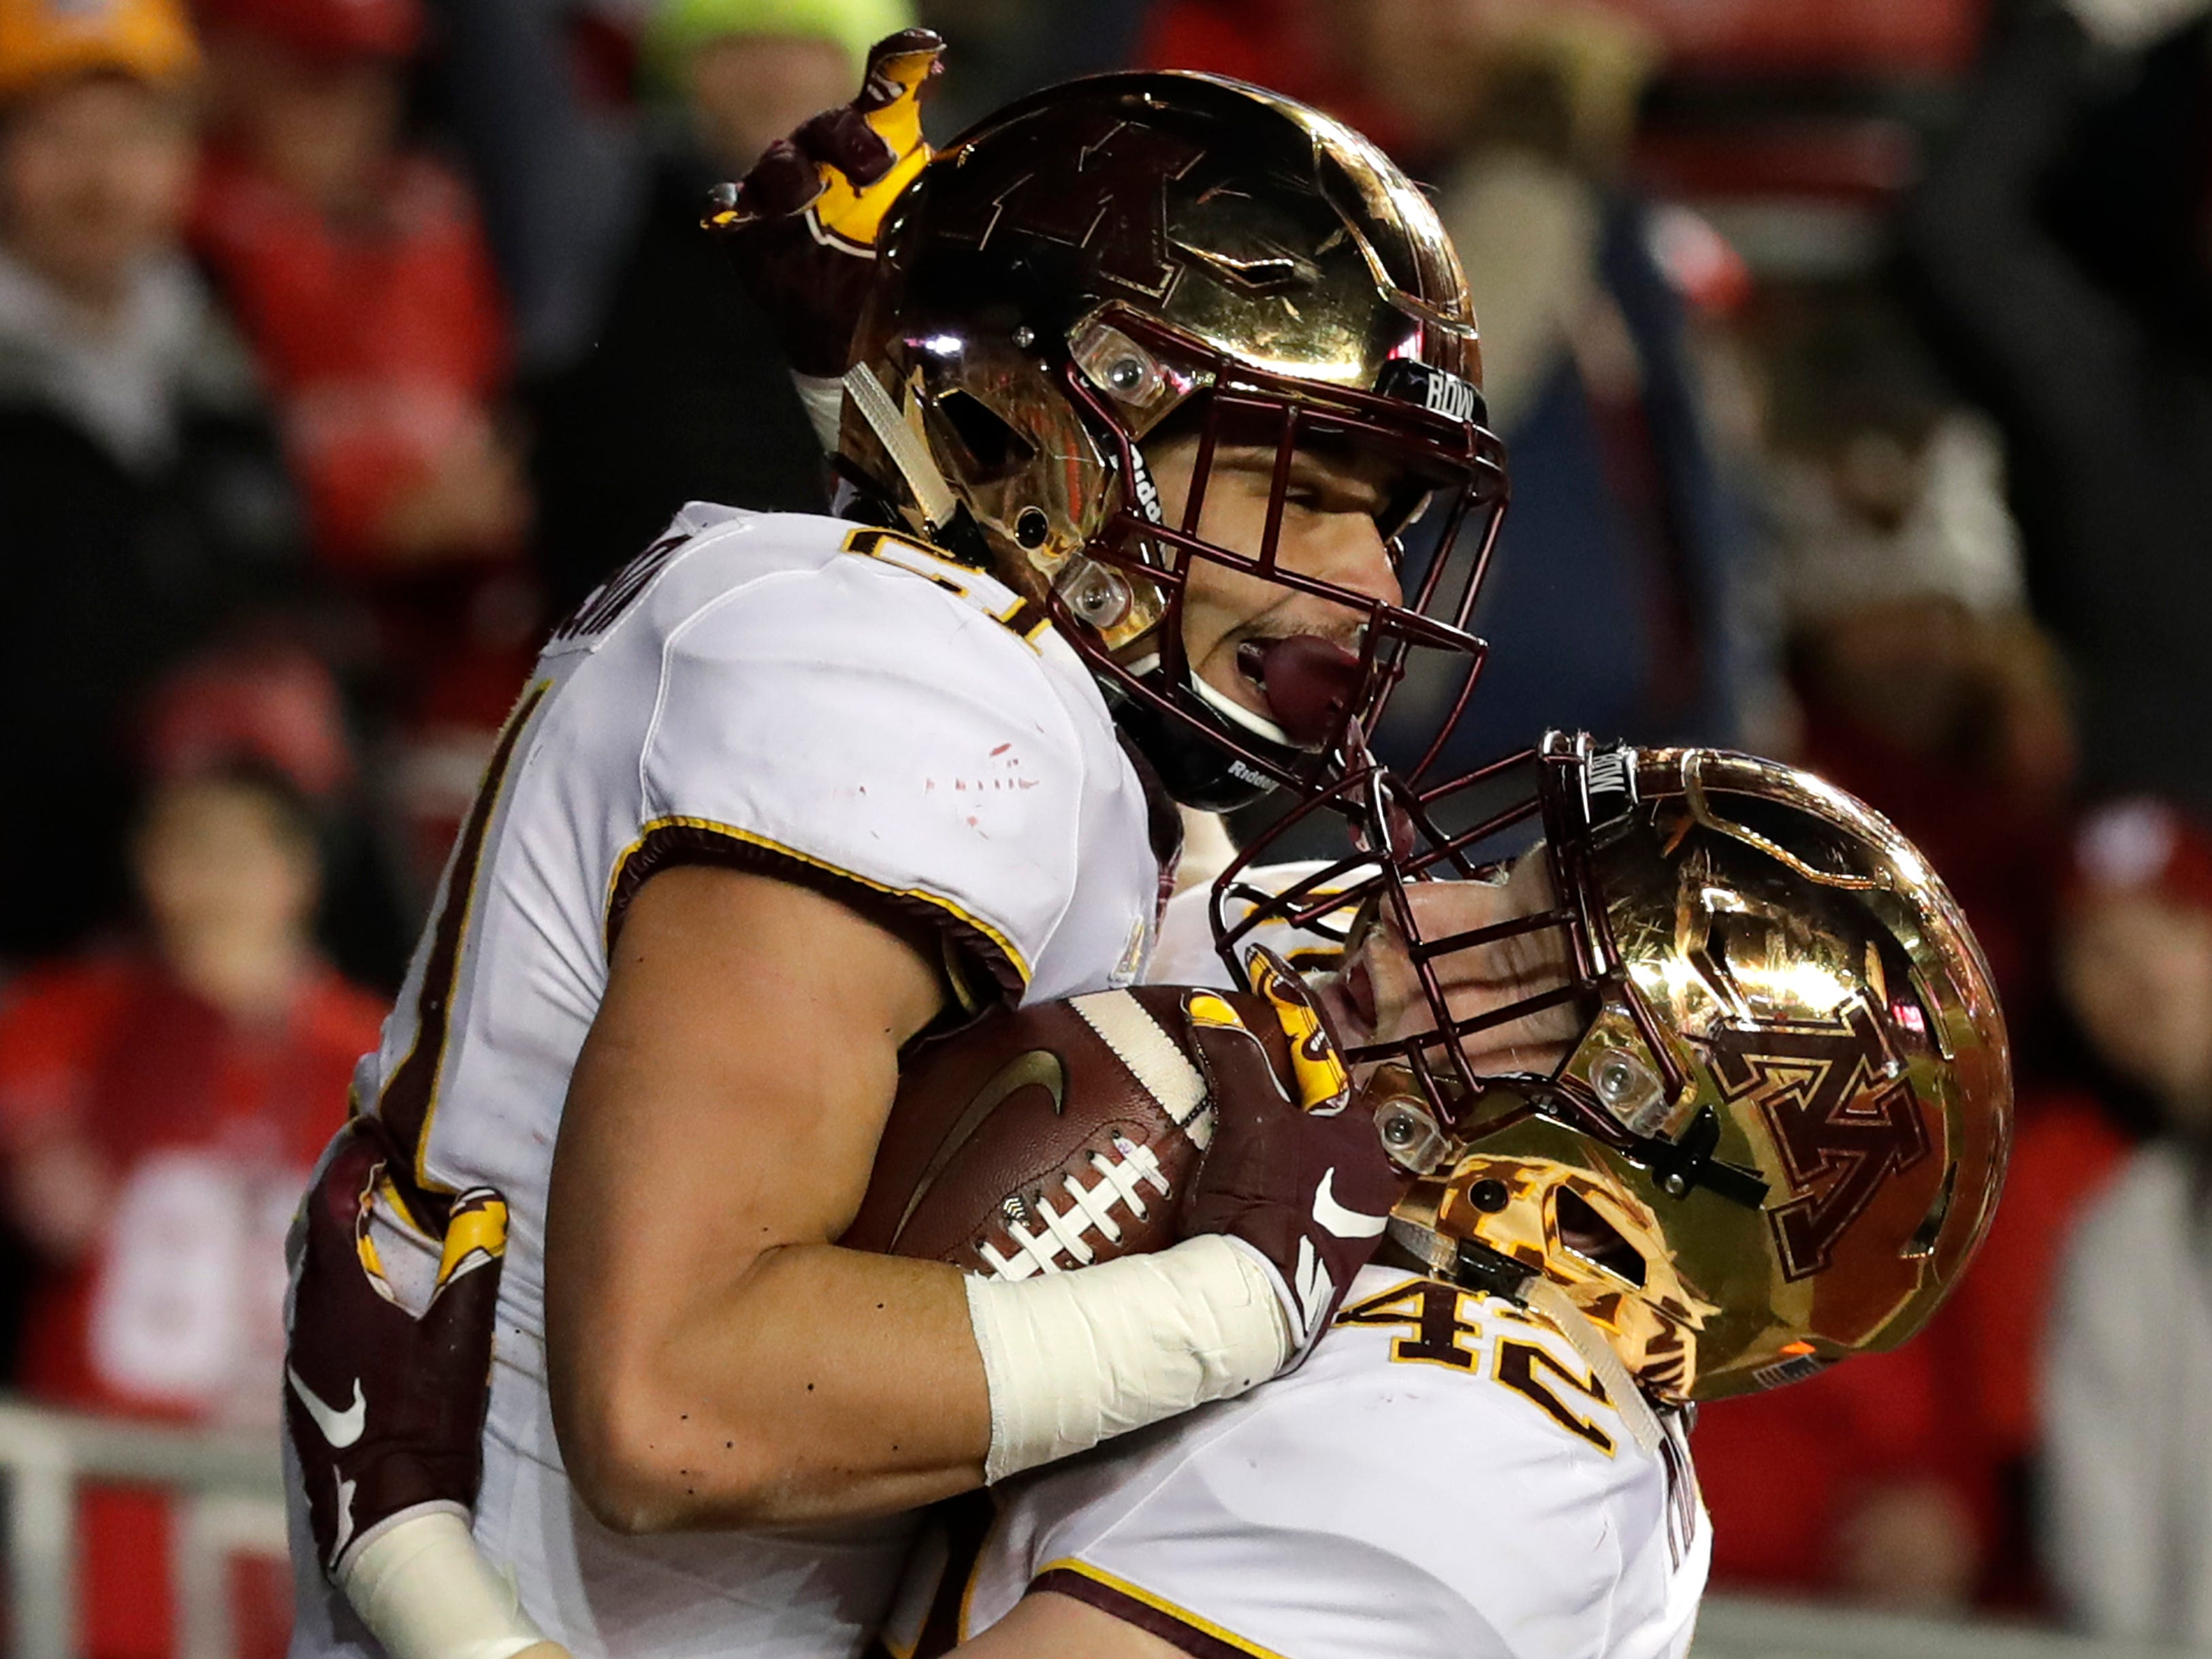 Minnesota running back Bryce Williams (left) celebrates one his two touchdowns in the fourth quarter against the Badgers with teammate Ko Kieft on Saturday, November 24, 2018, at Camp Randall Stadium in Madison, Wis.